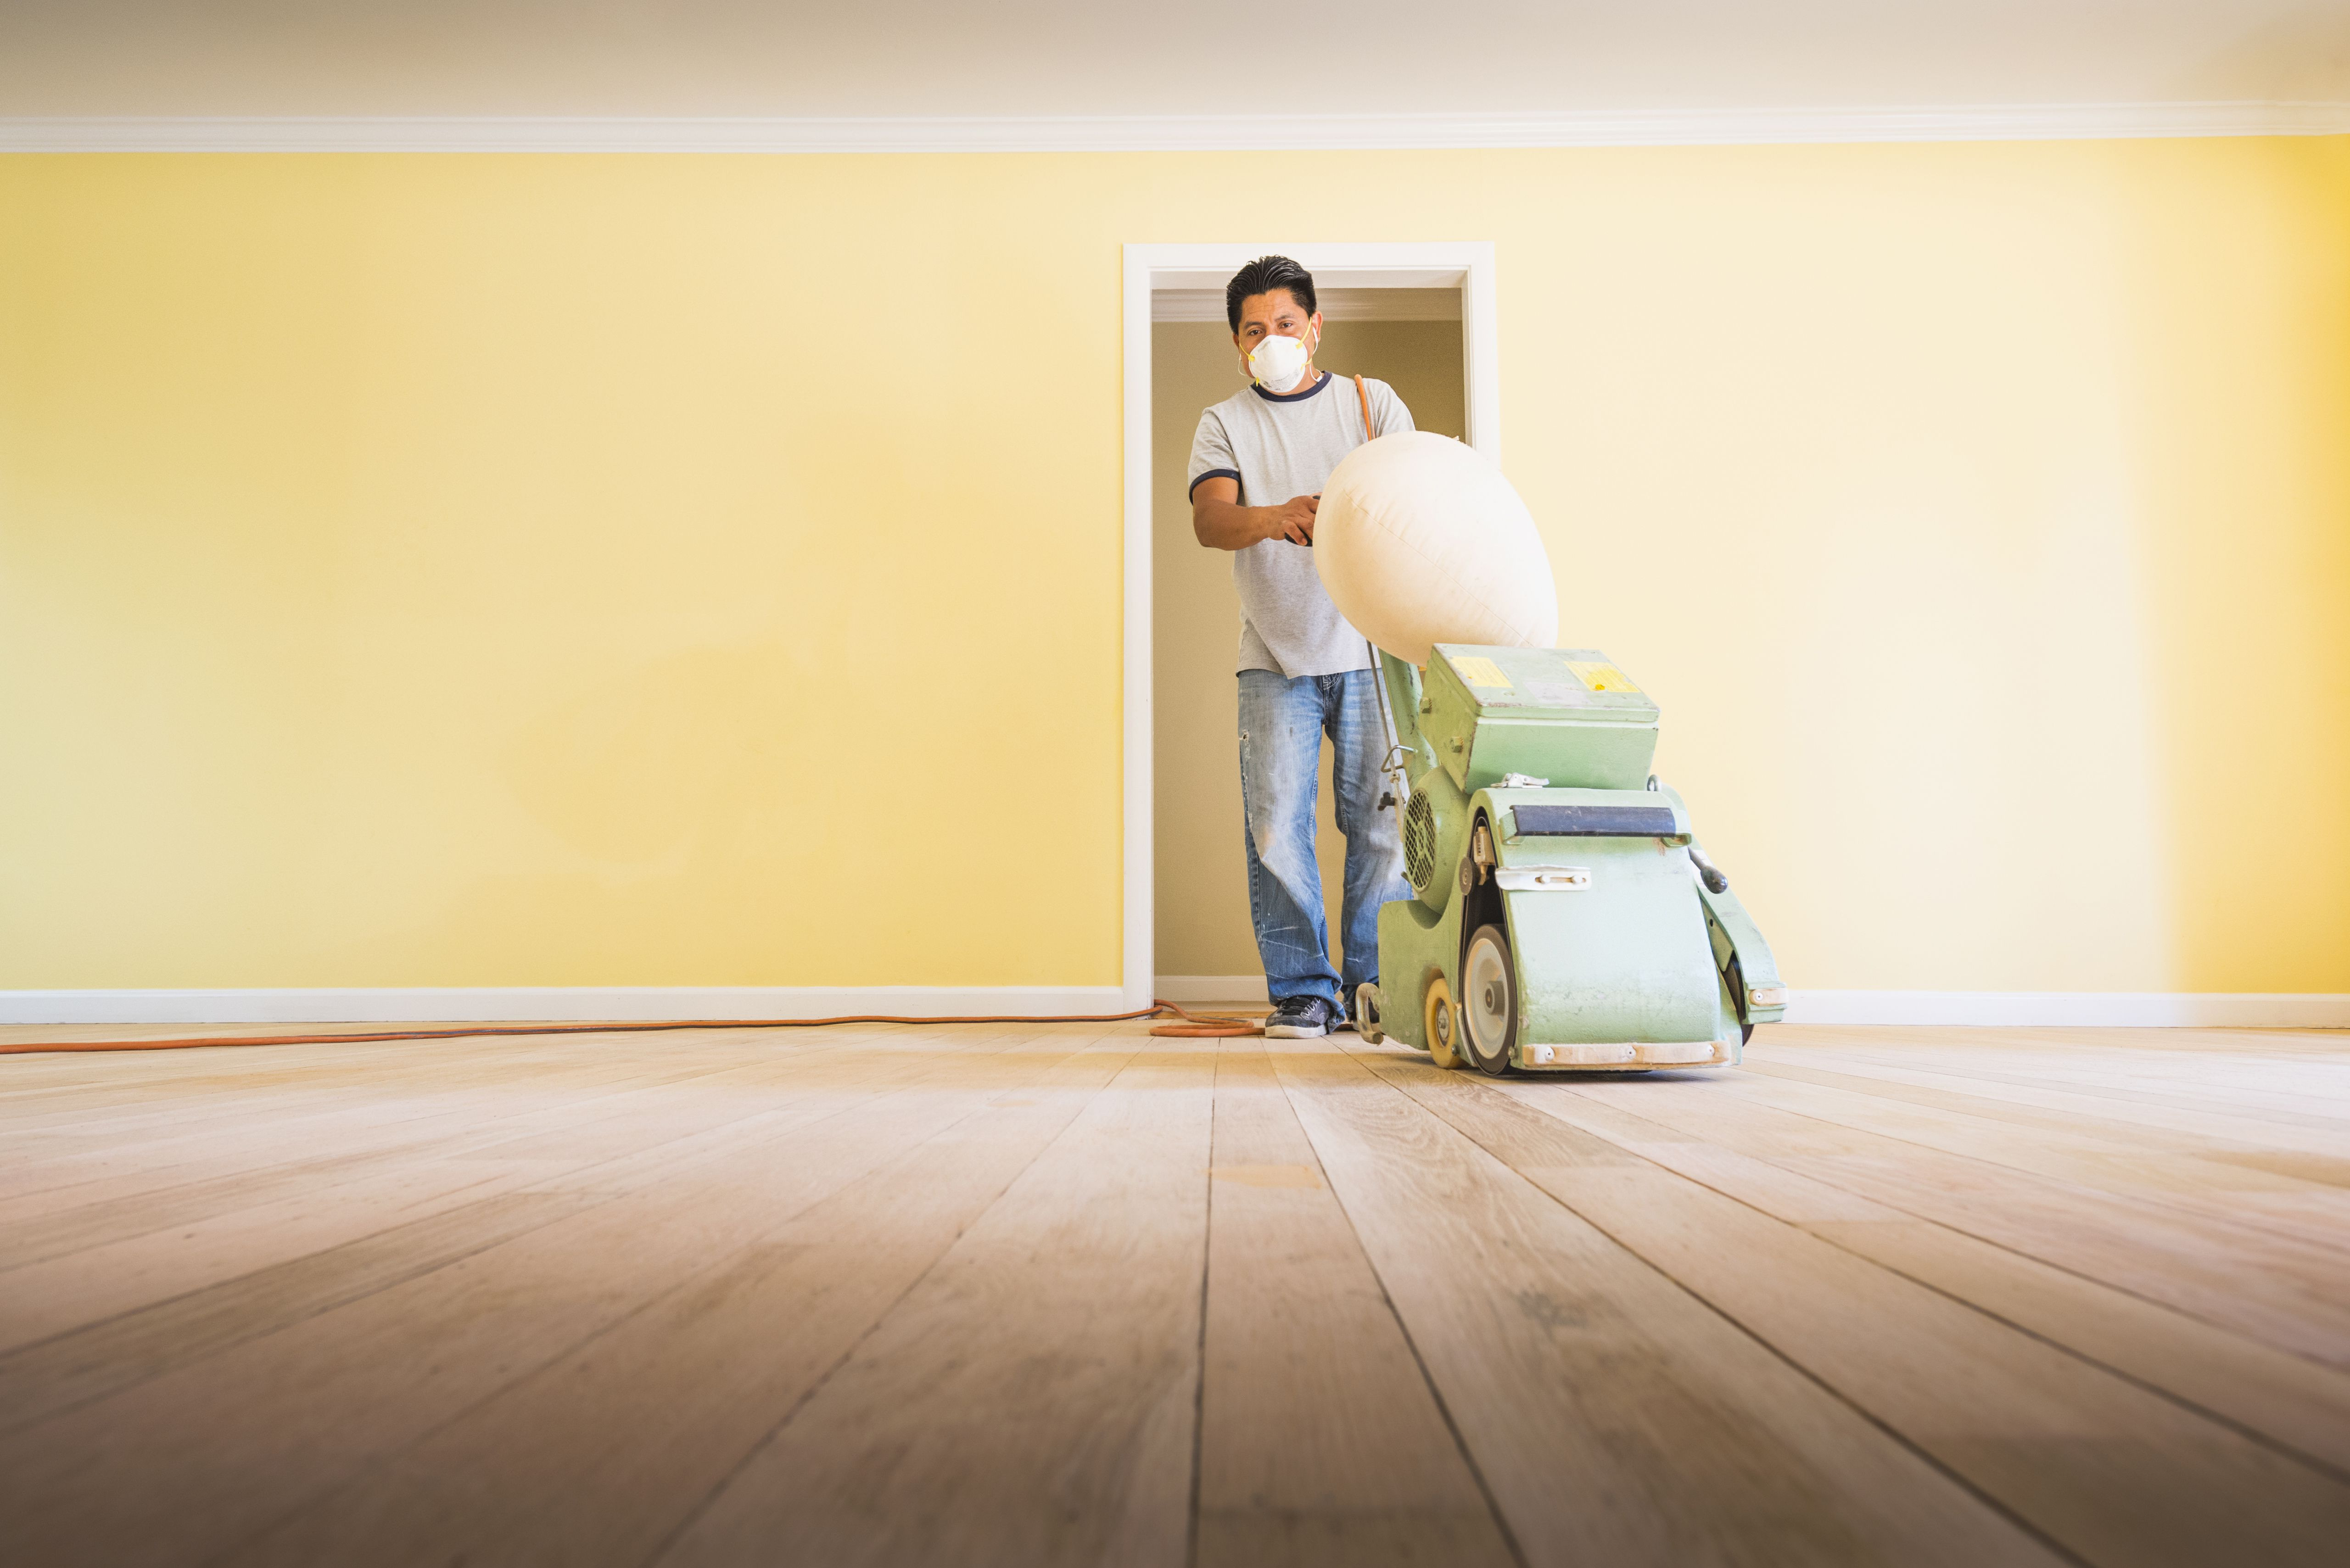 30 Lovely Refinishing Hardwood Floors Vs Replacing Cost 2021 free download refinishing hardwood floors vs replacing cost of should you paint walls or refinish floors first in floorsandingafterpainting 5a8f08dfae9ab80037d9d878